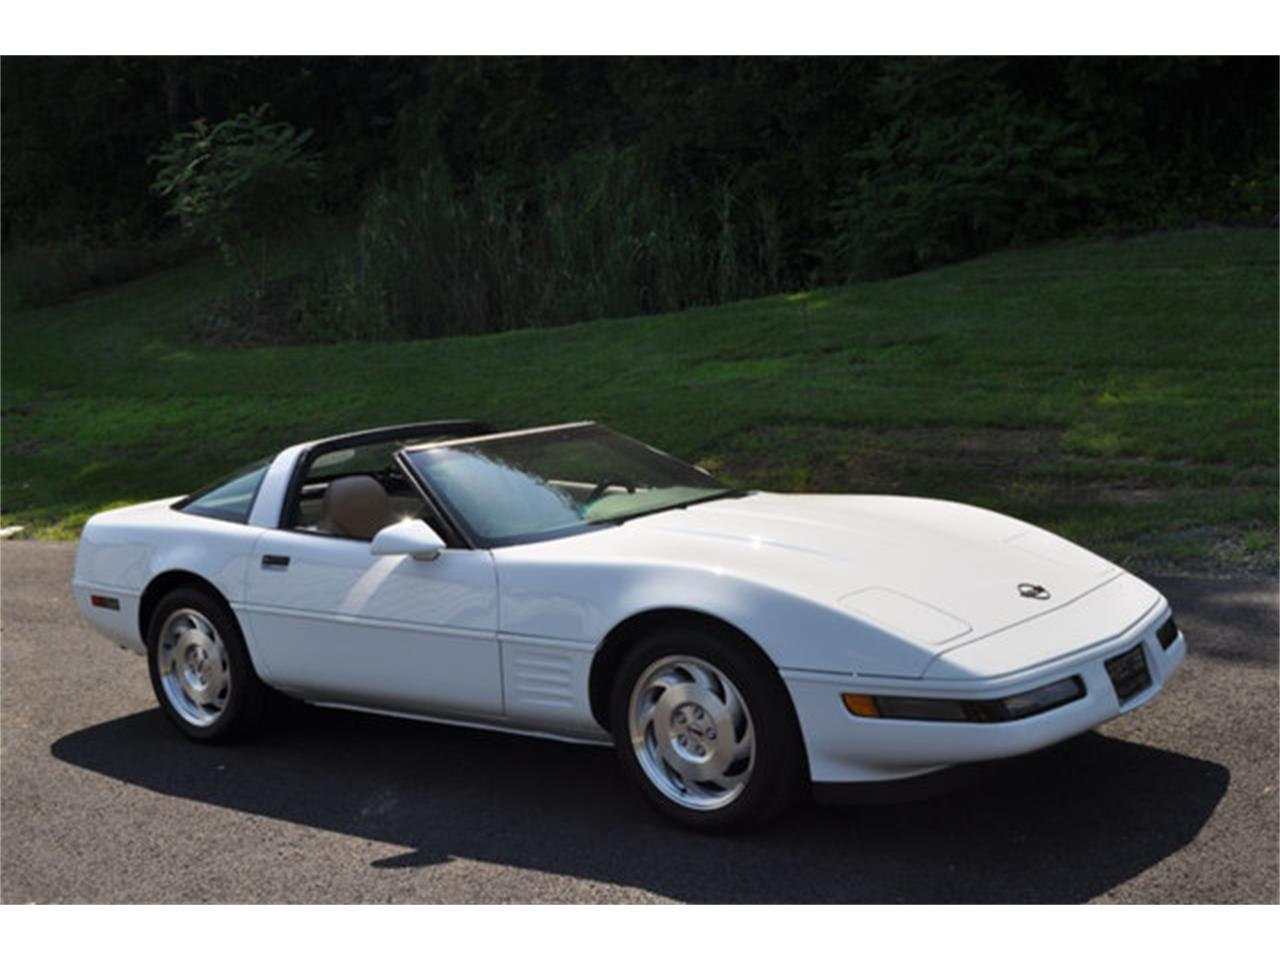 Large Picture of '94 Corvette - $12,999.00 Offered by Prestige Motor Car Co. - QETU